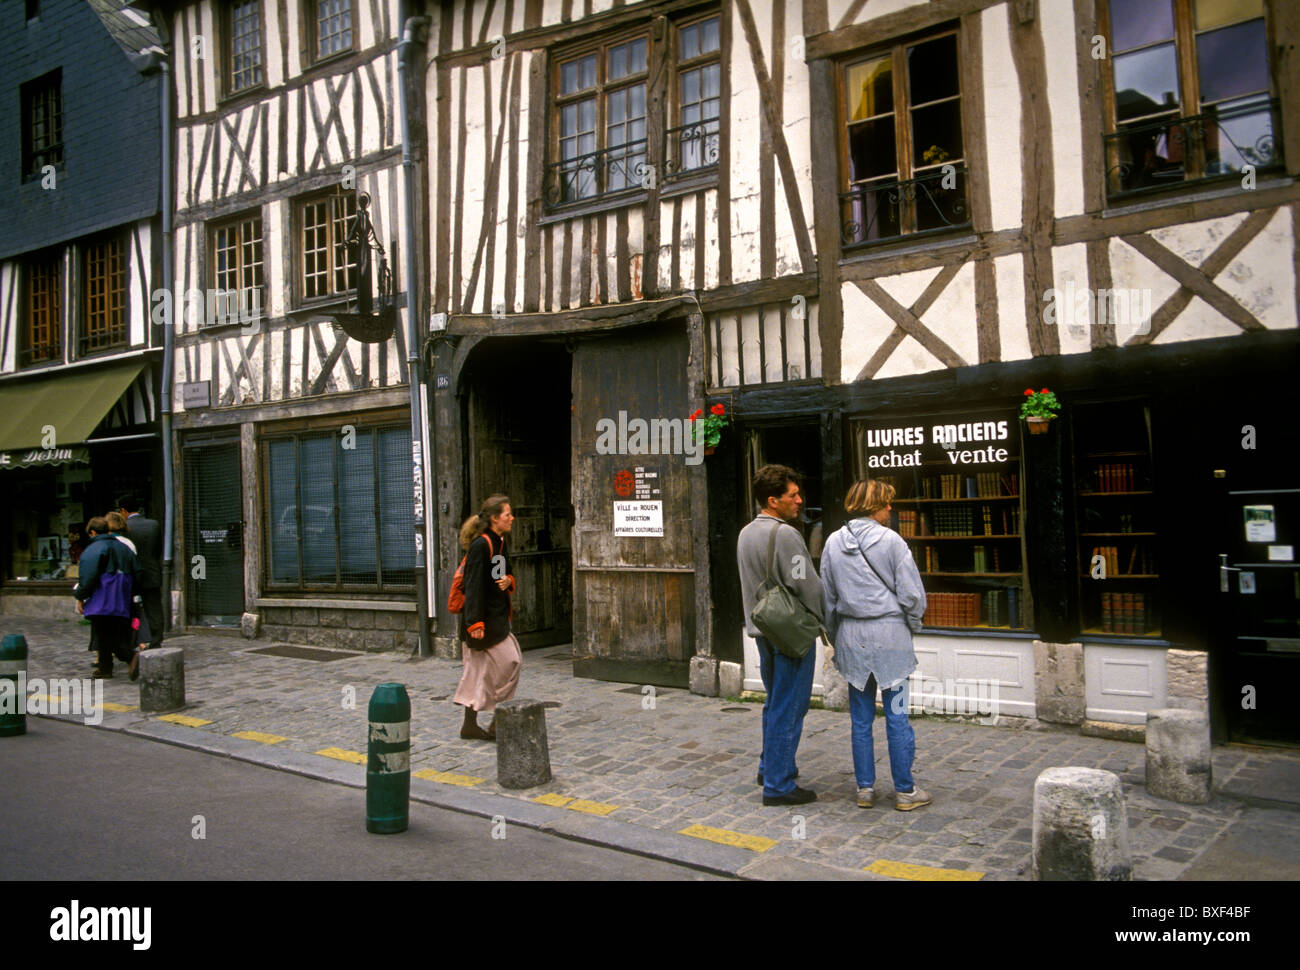 bookstore, bookshop, bookseller, book dealer, new and used books,, Rue de Martainville, city of Rouen, Upper Normandy, - Stock Image